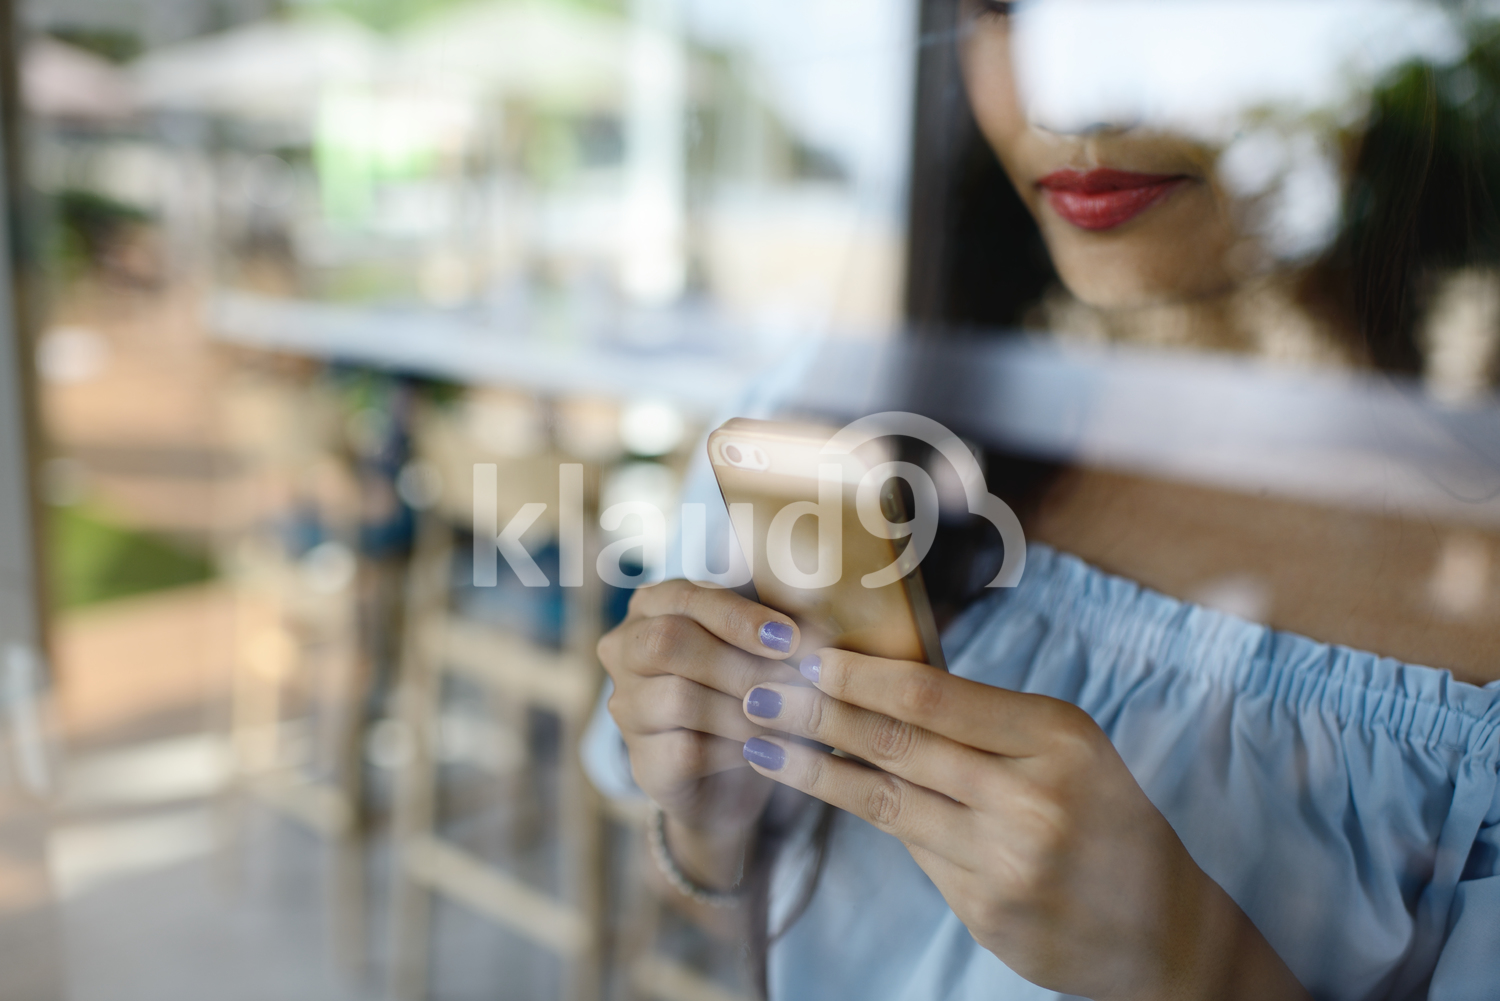 Woman texting on her phone through glass